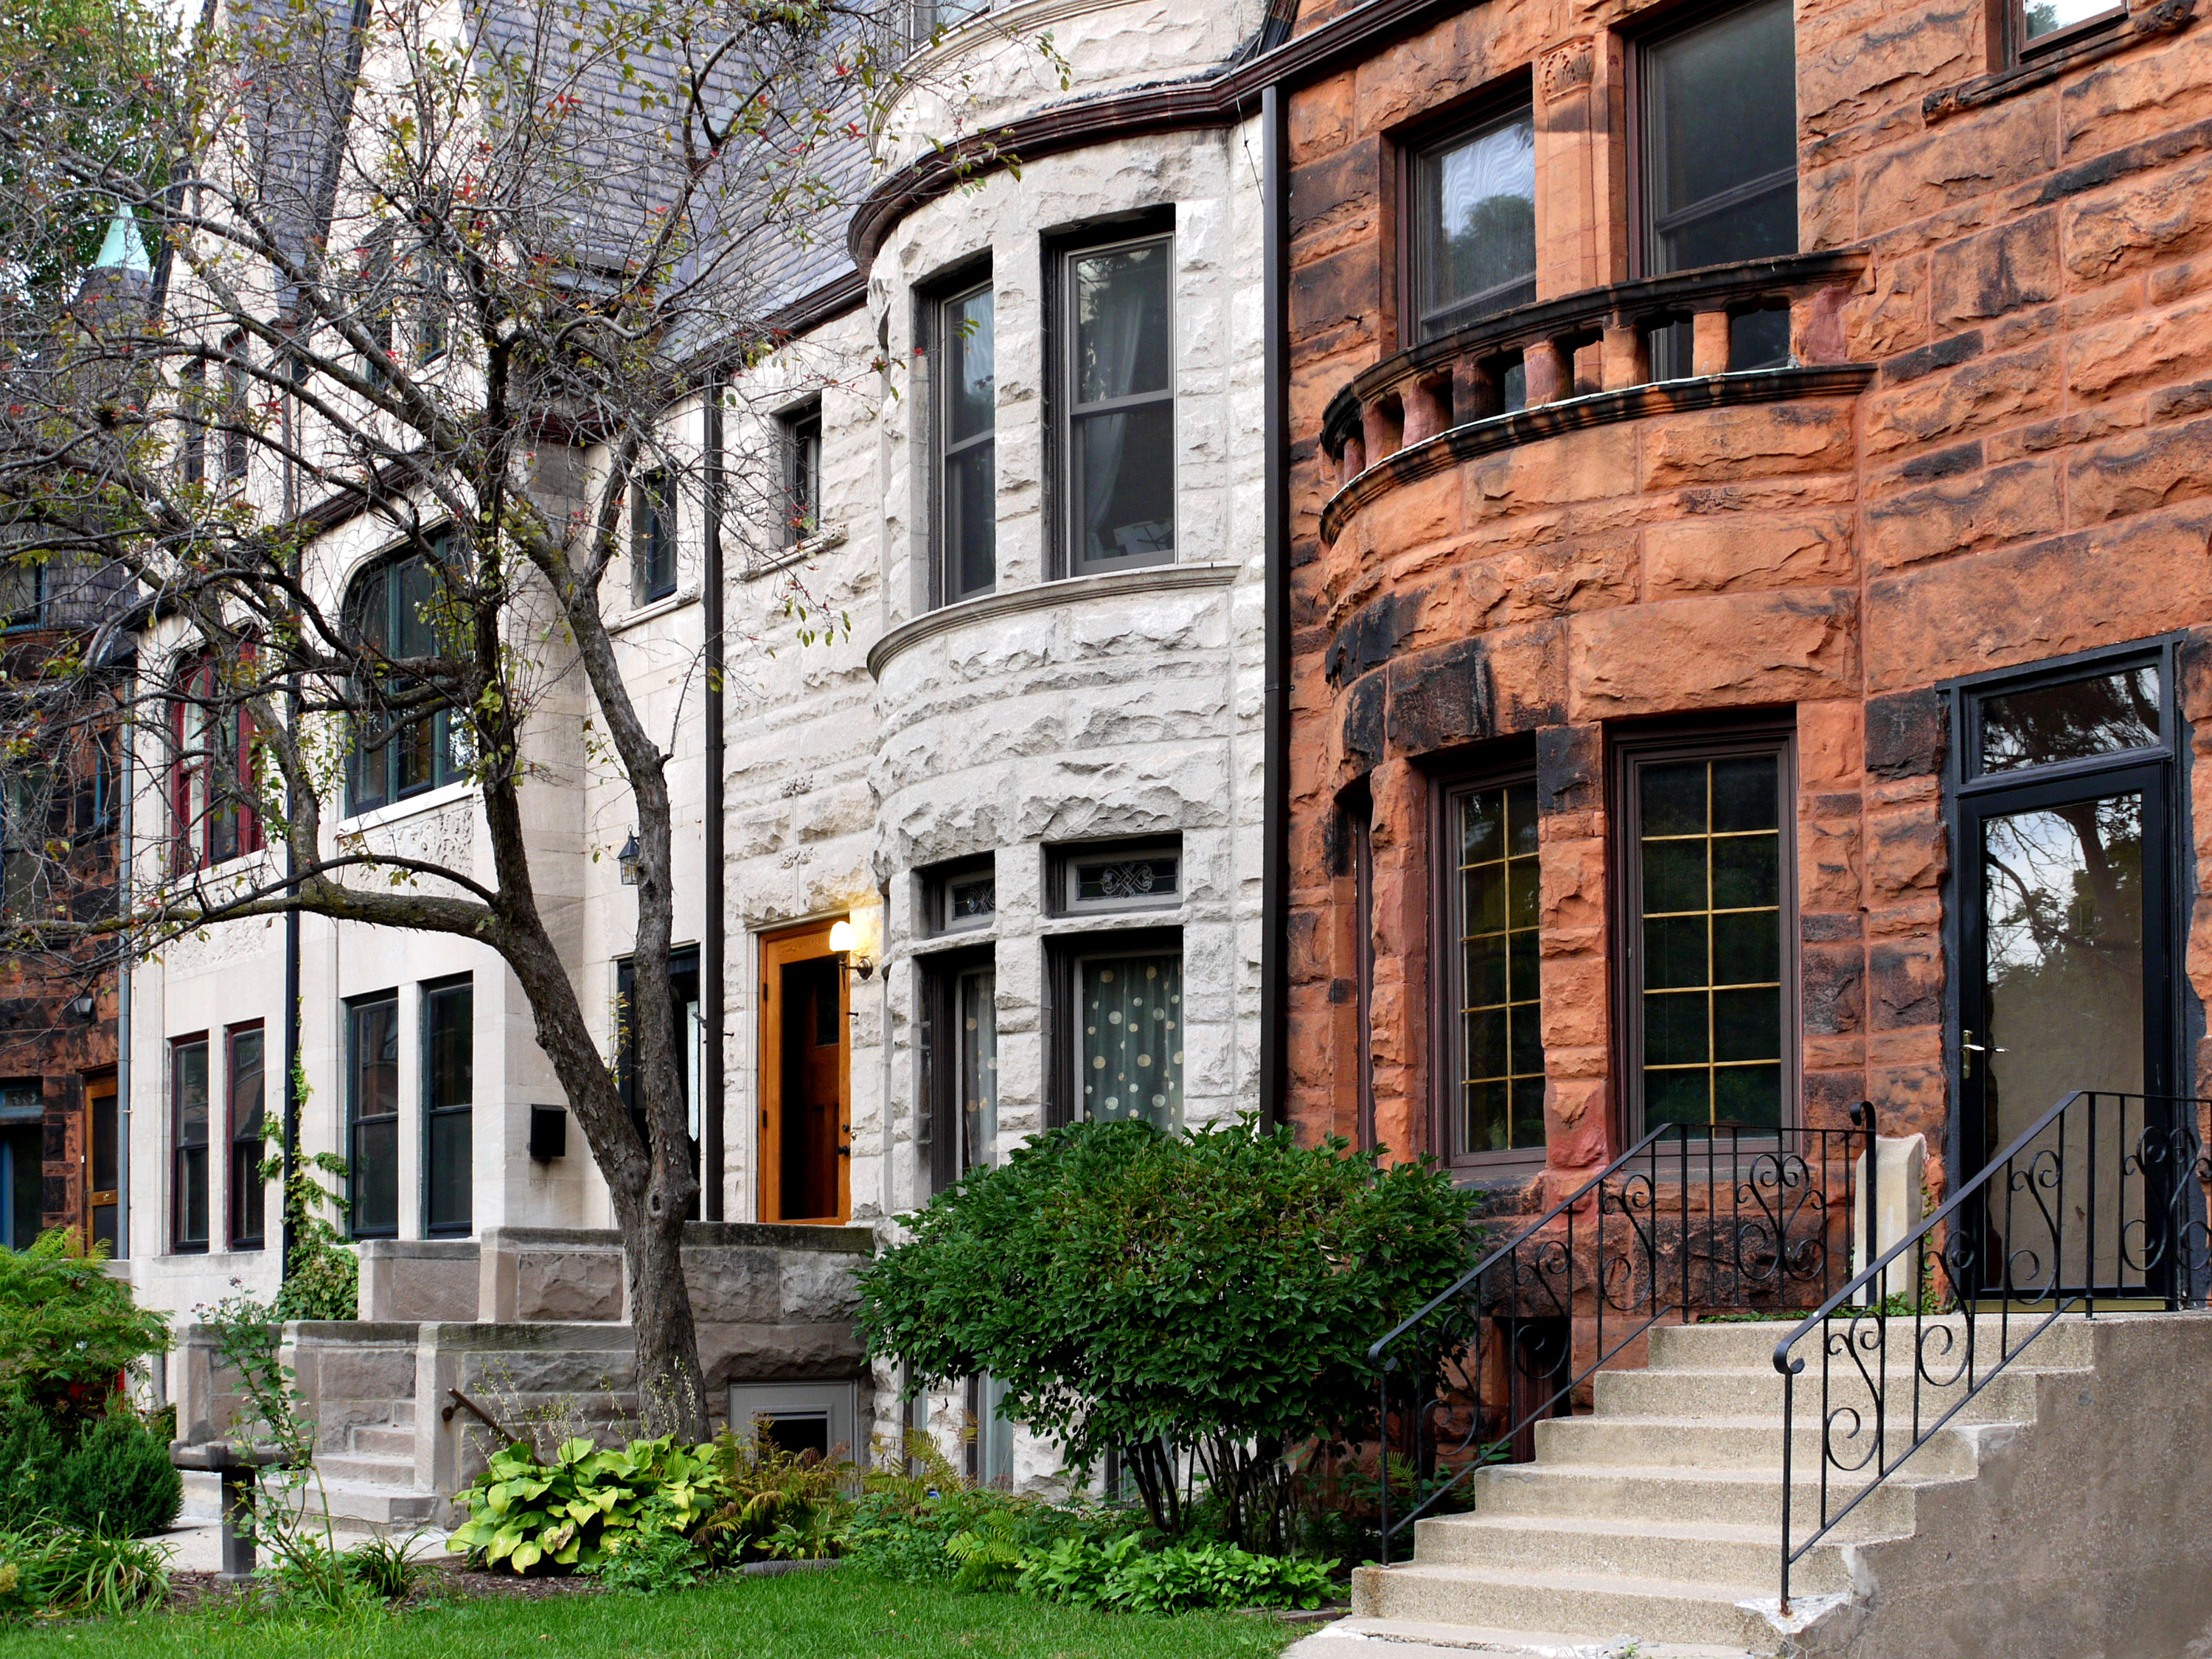 A row of gray and brown stone mansions on a residential street in Kenwood.